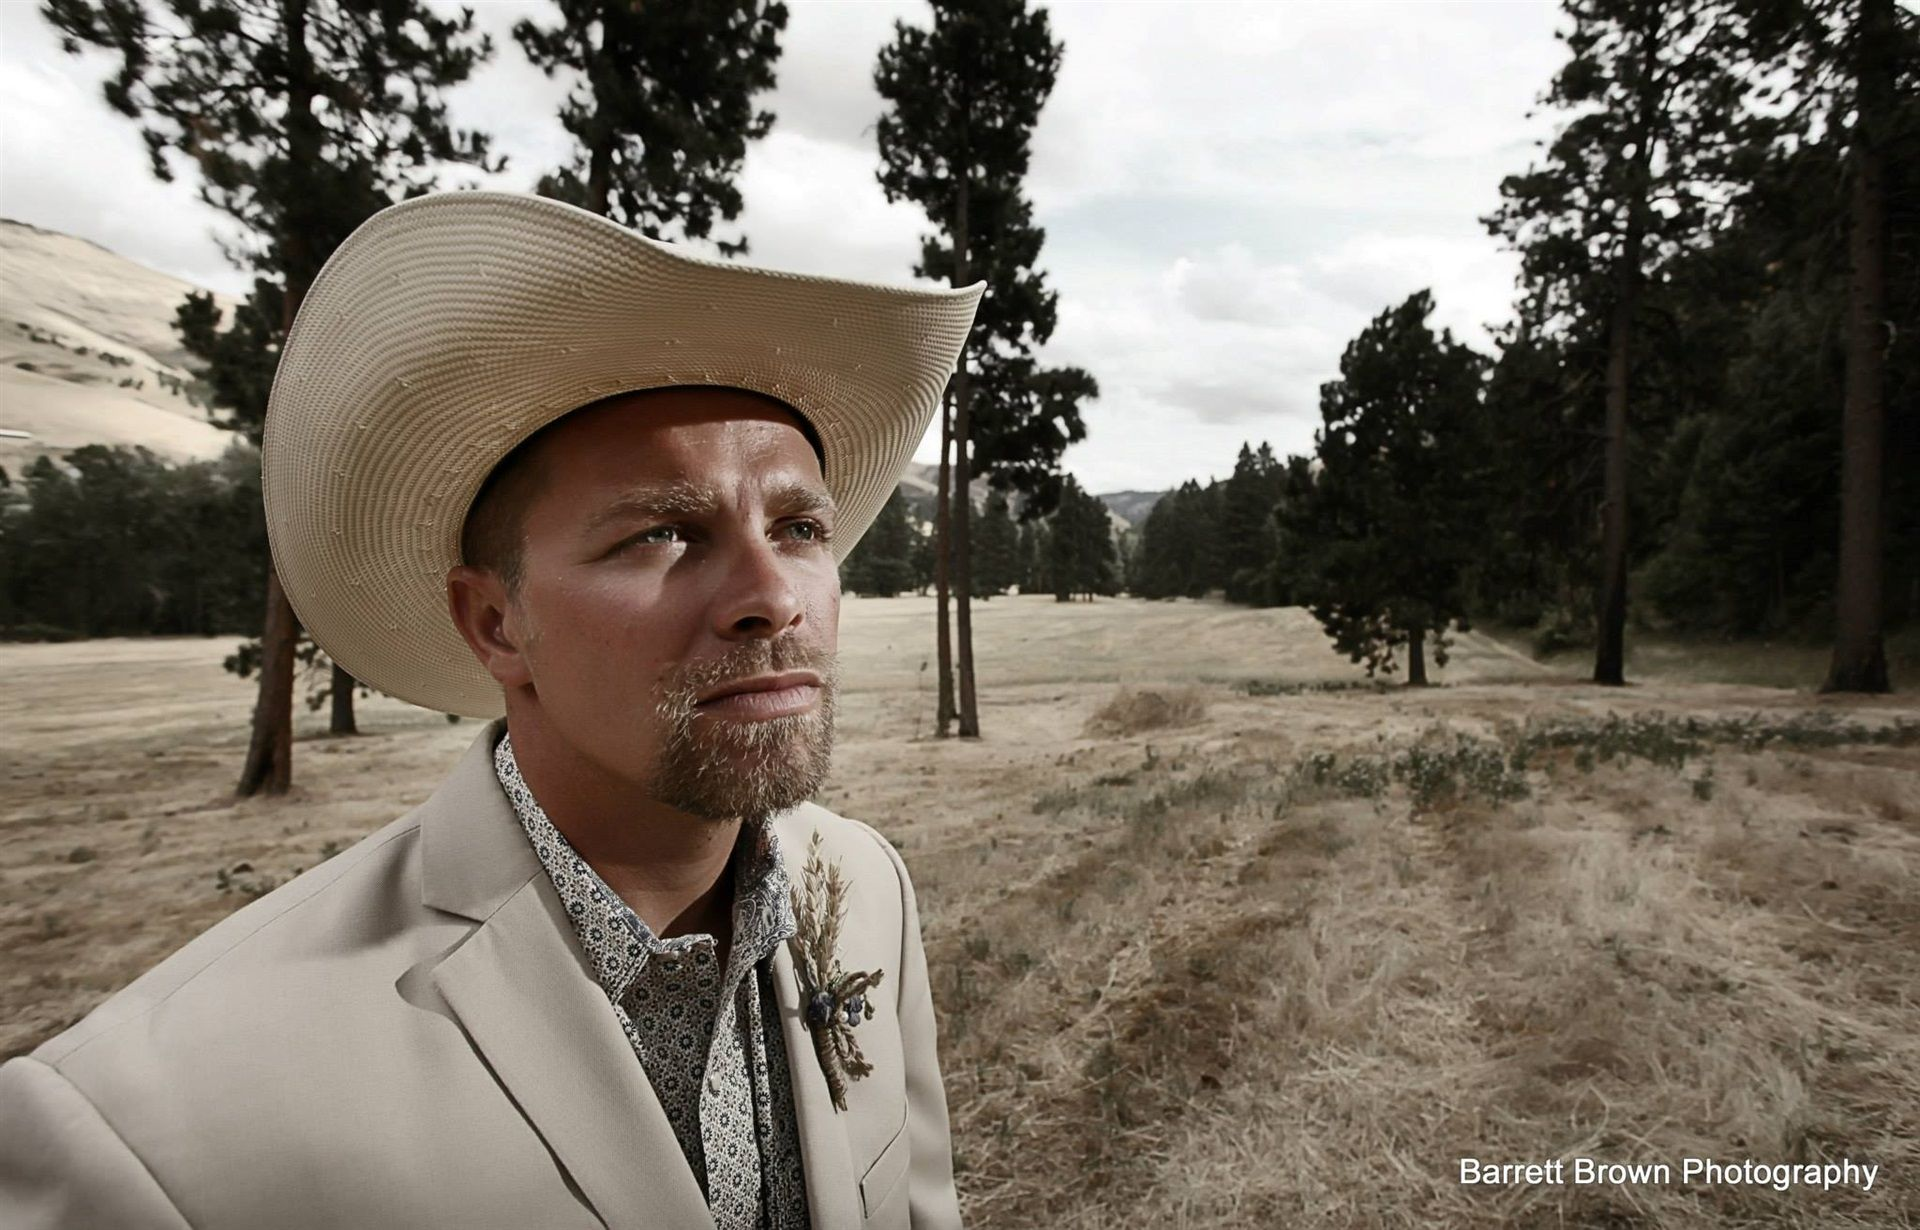 Groom in a field wearing 10-gallon hat and suit